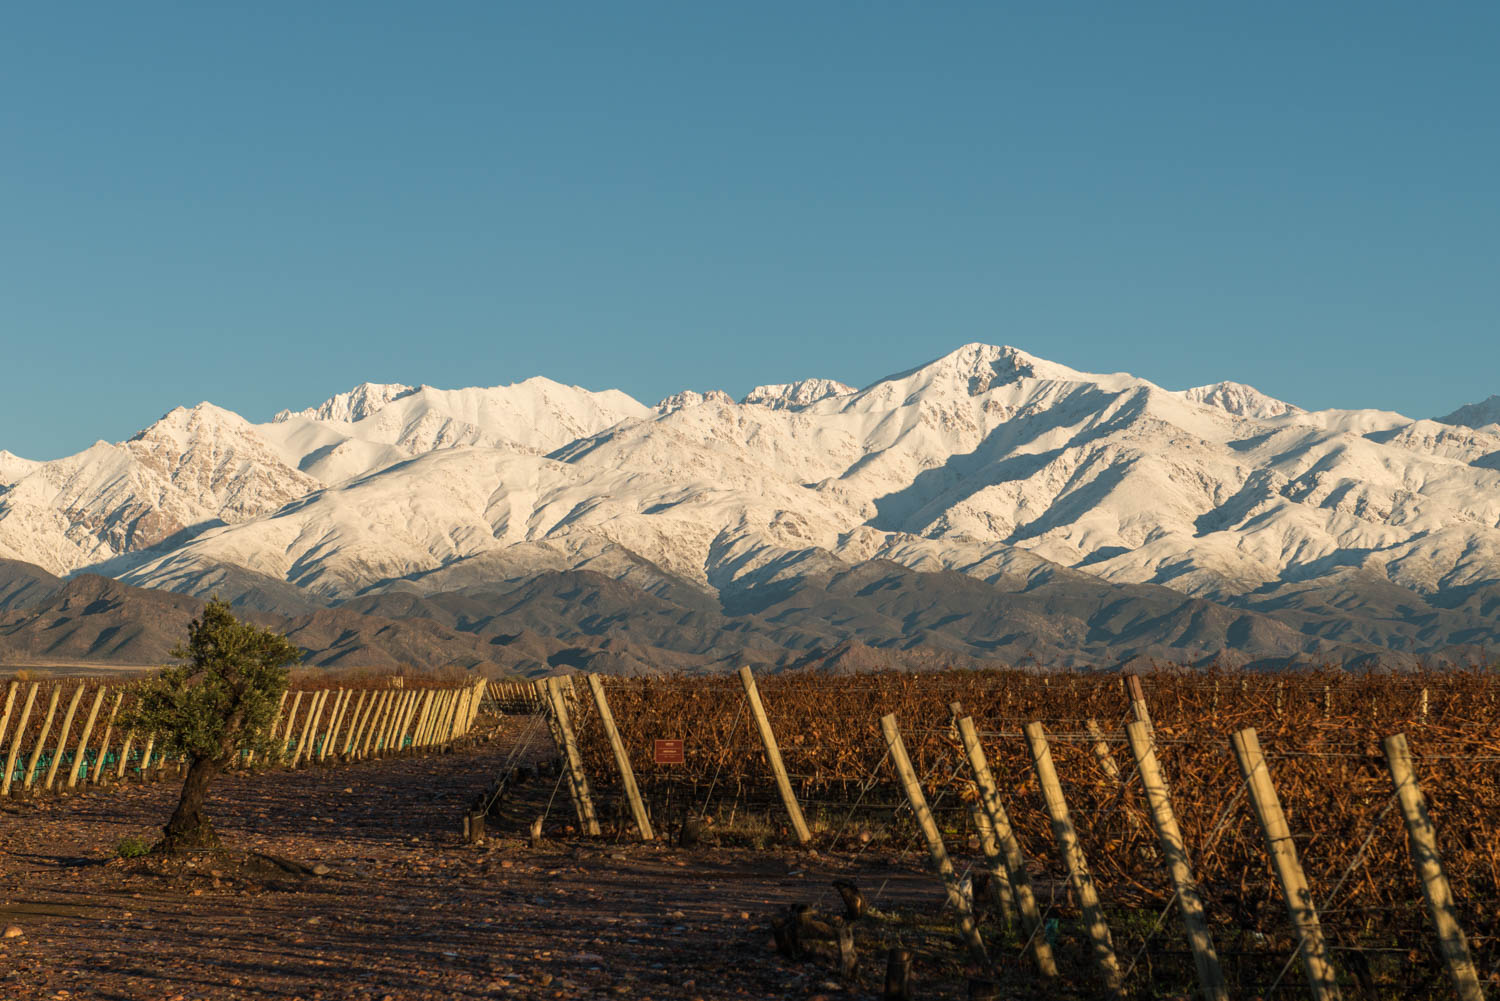 Planting in a cross section of soil during the winter. Vina Andrico vineyard in Mendoza, Argentina.